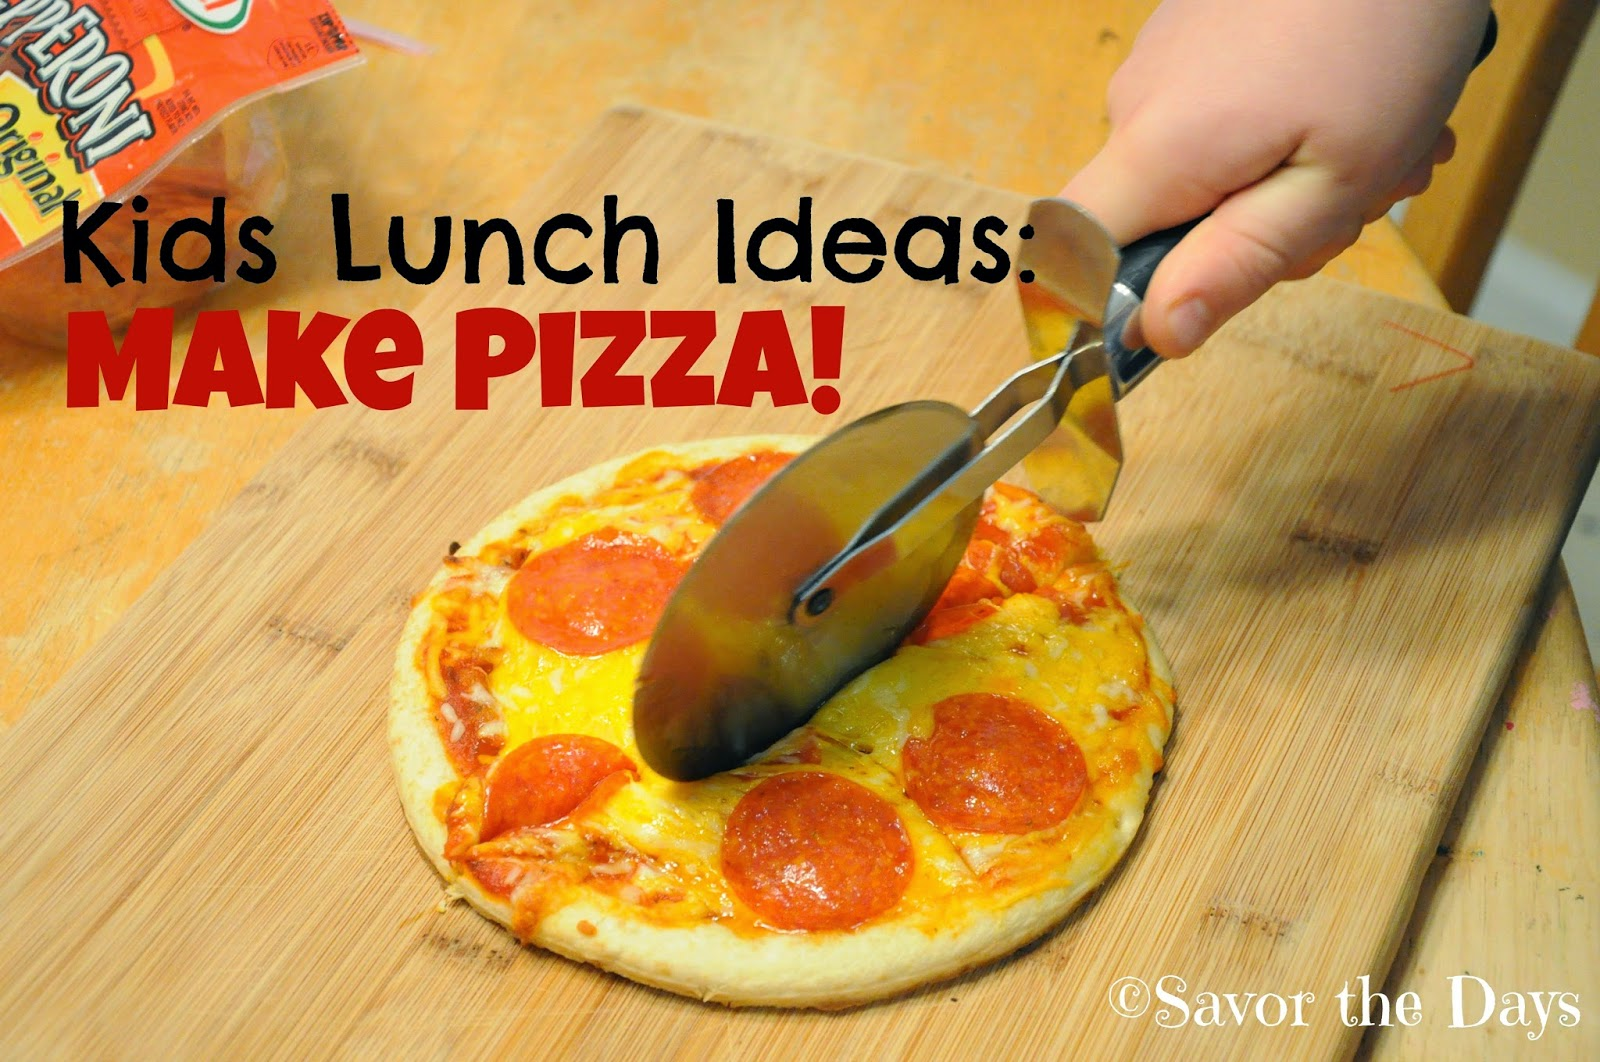 Summer Lunch Ideas for Kids: Make Pizza!